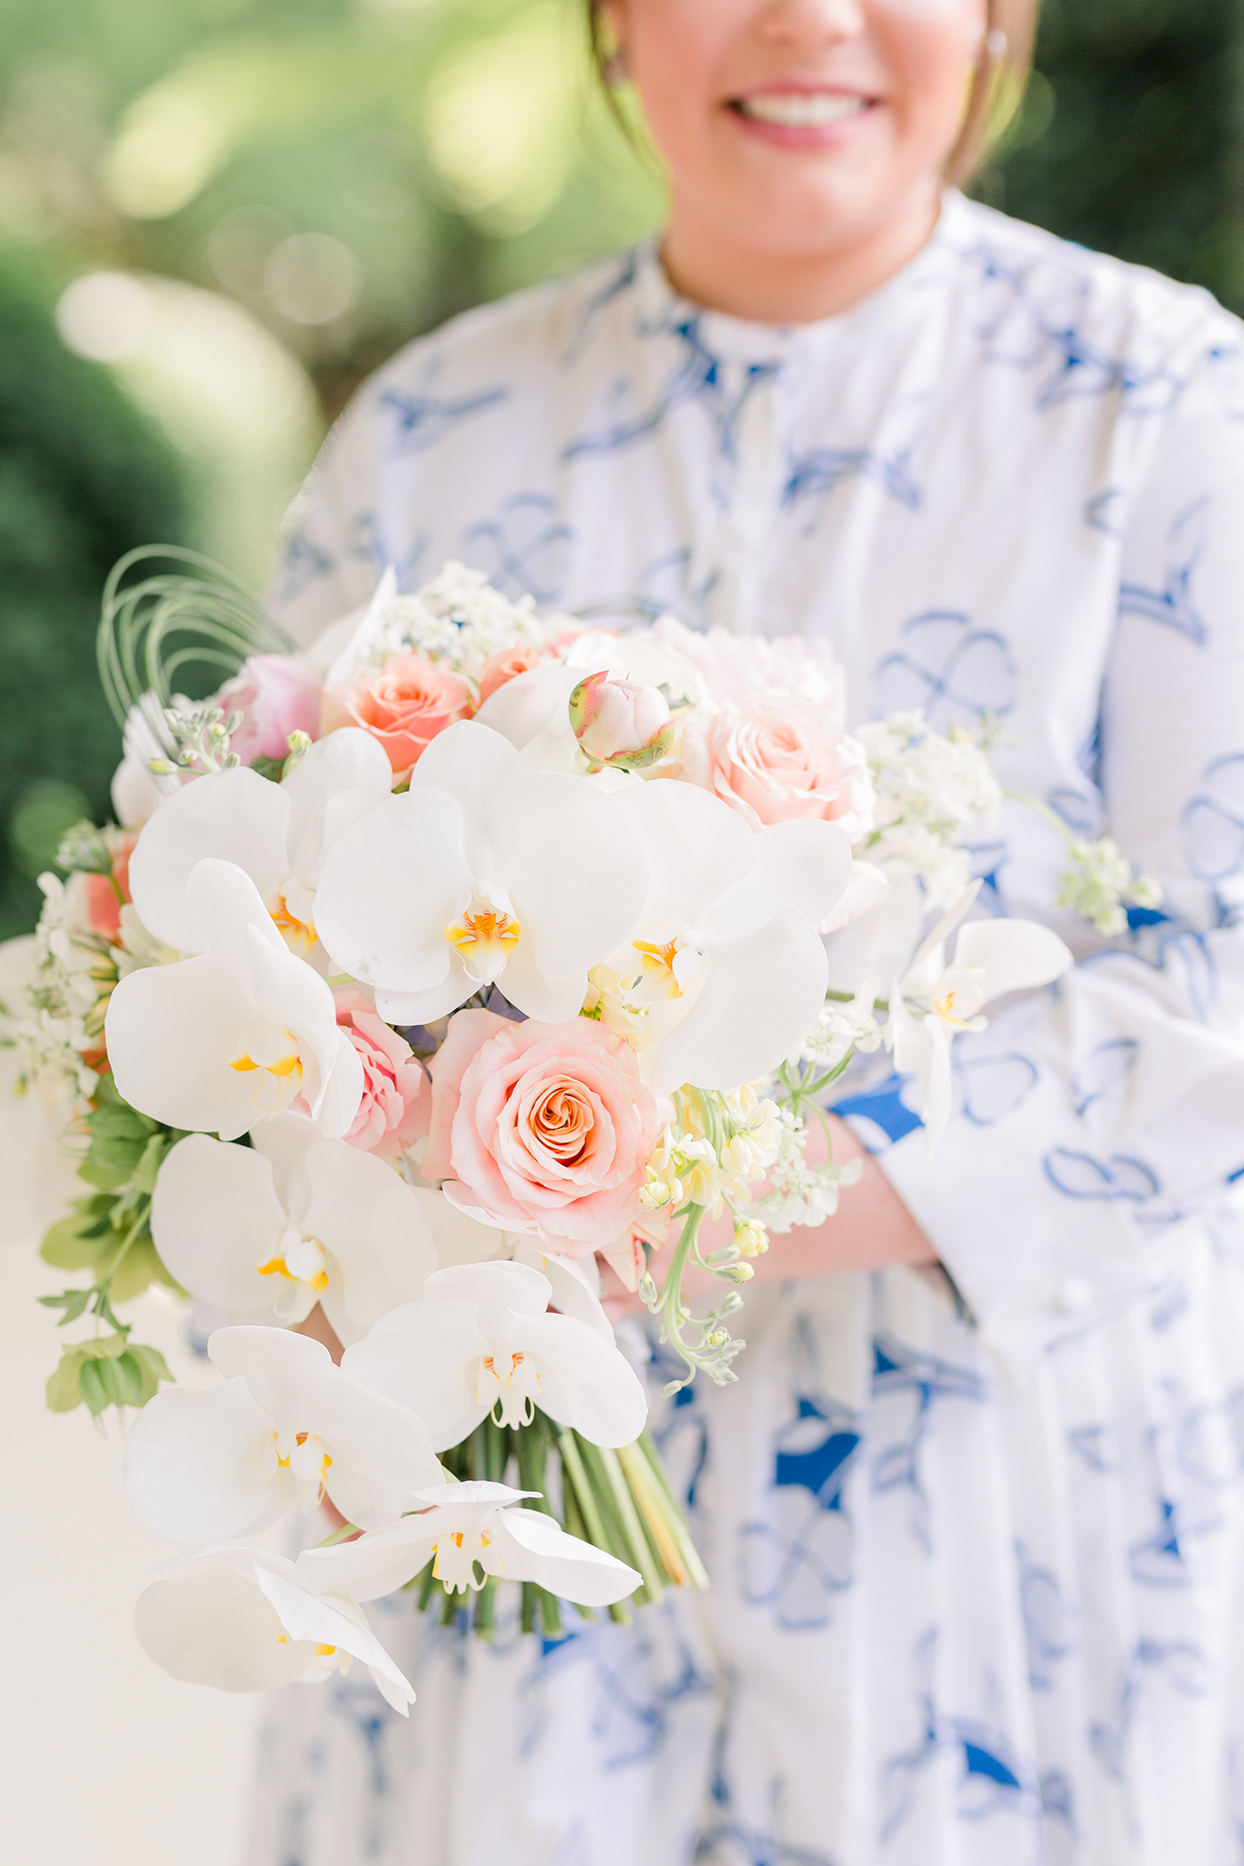 bride holding white and blush floral wedding bouquet